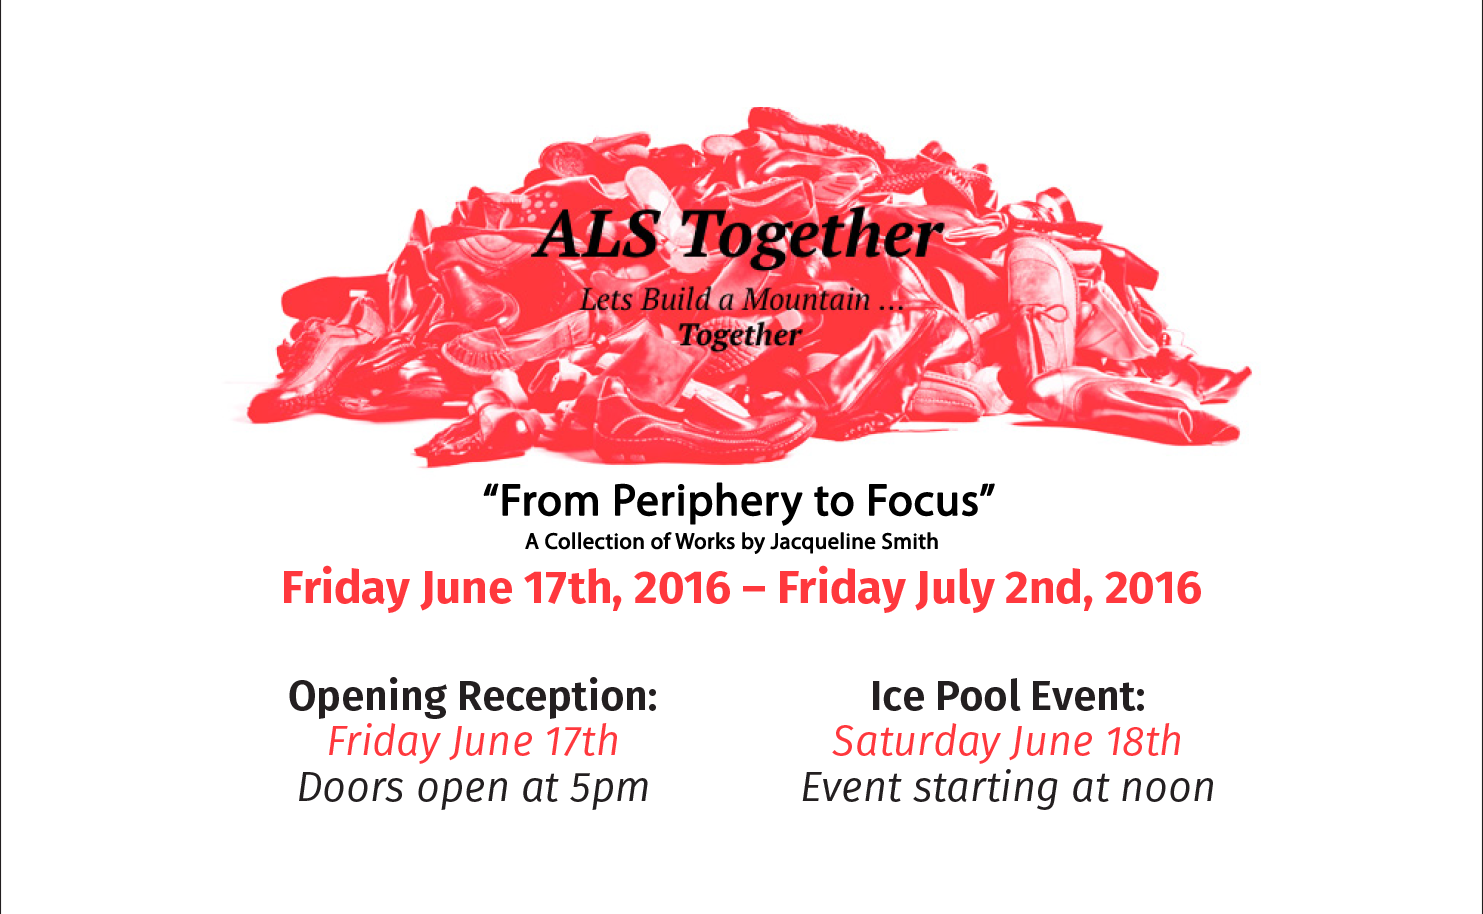 ALS Together: From Periphery to Focus